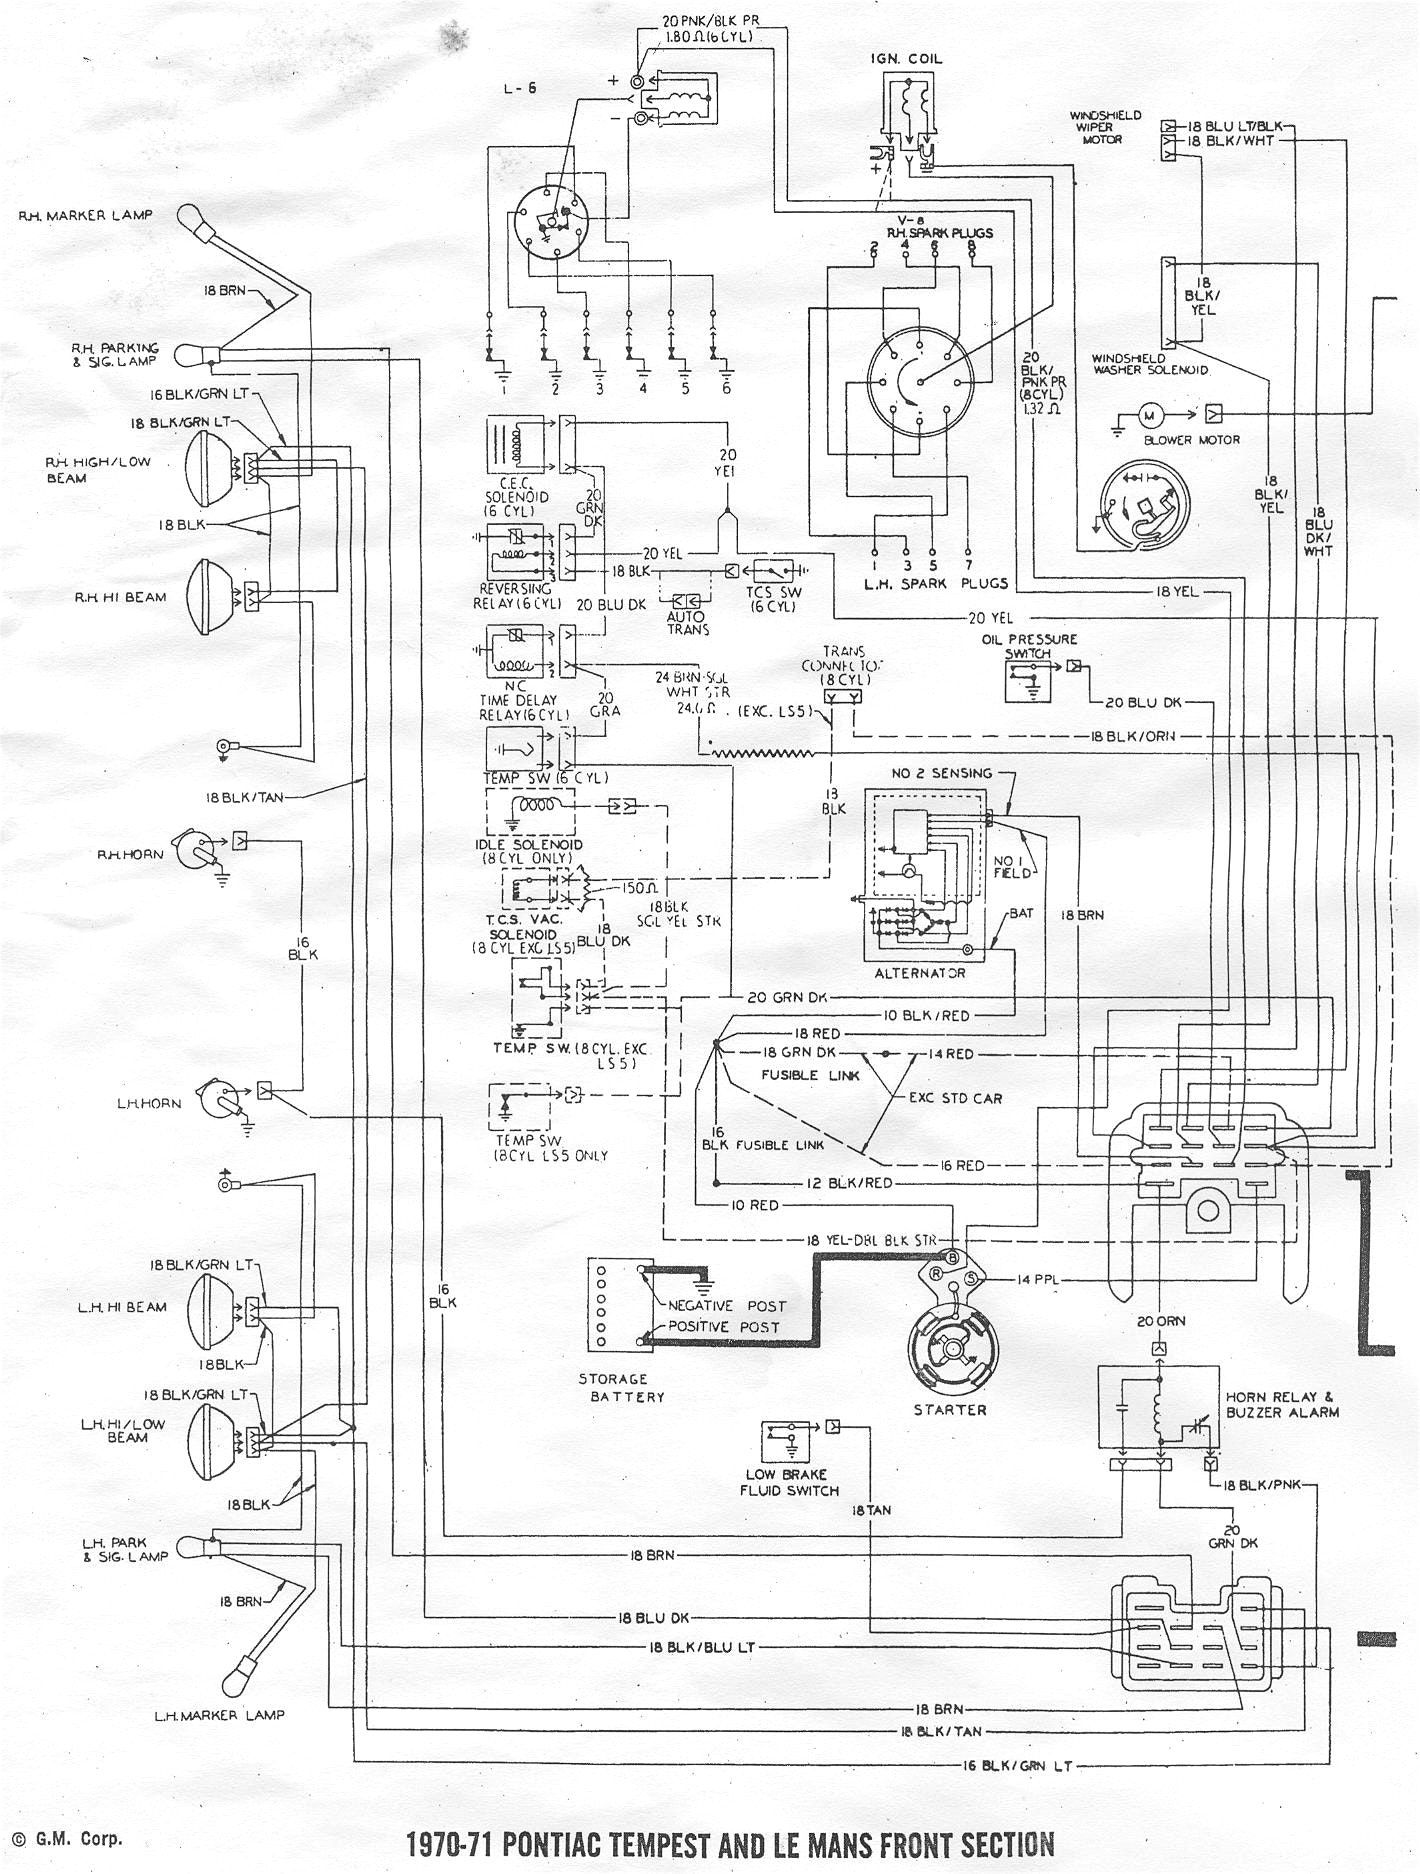 1972 Triumph Bonneville Wiring Diagram Monocot Seed 1976 Midget Schematic Database